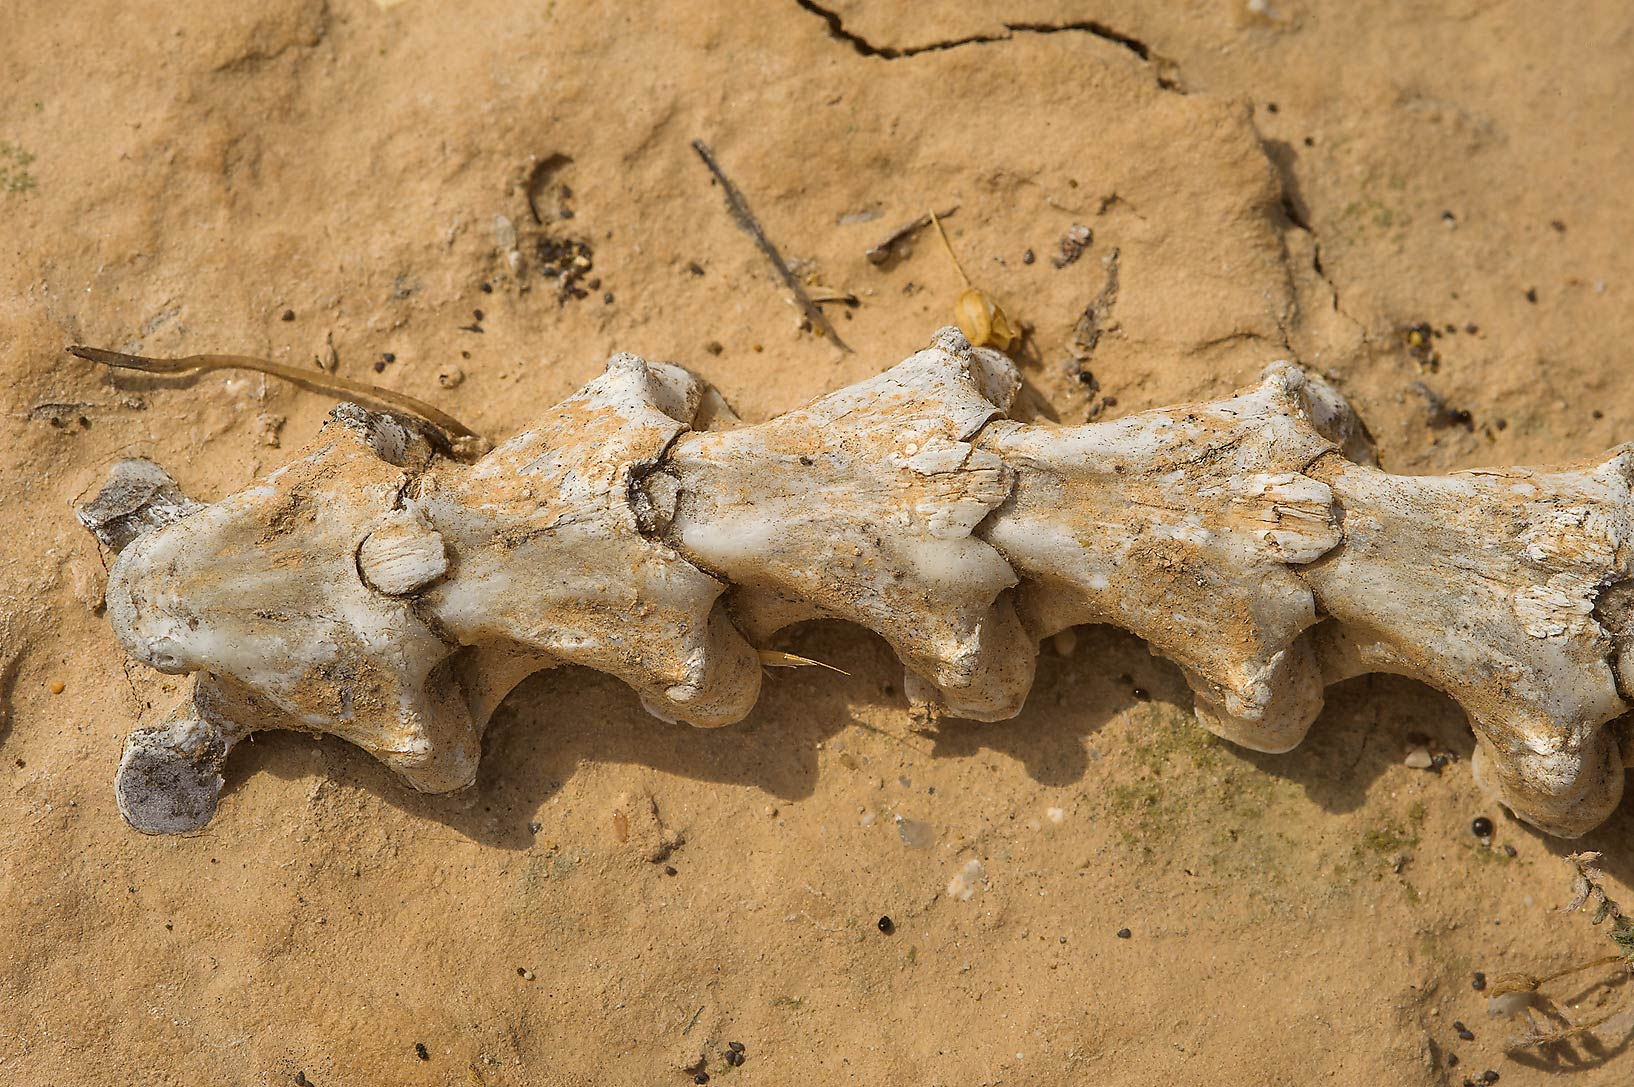 Snake's skeleton in area of Ras Laffan farms. Northern Qatar